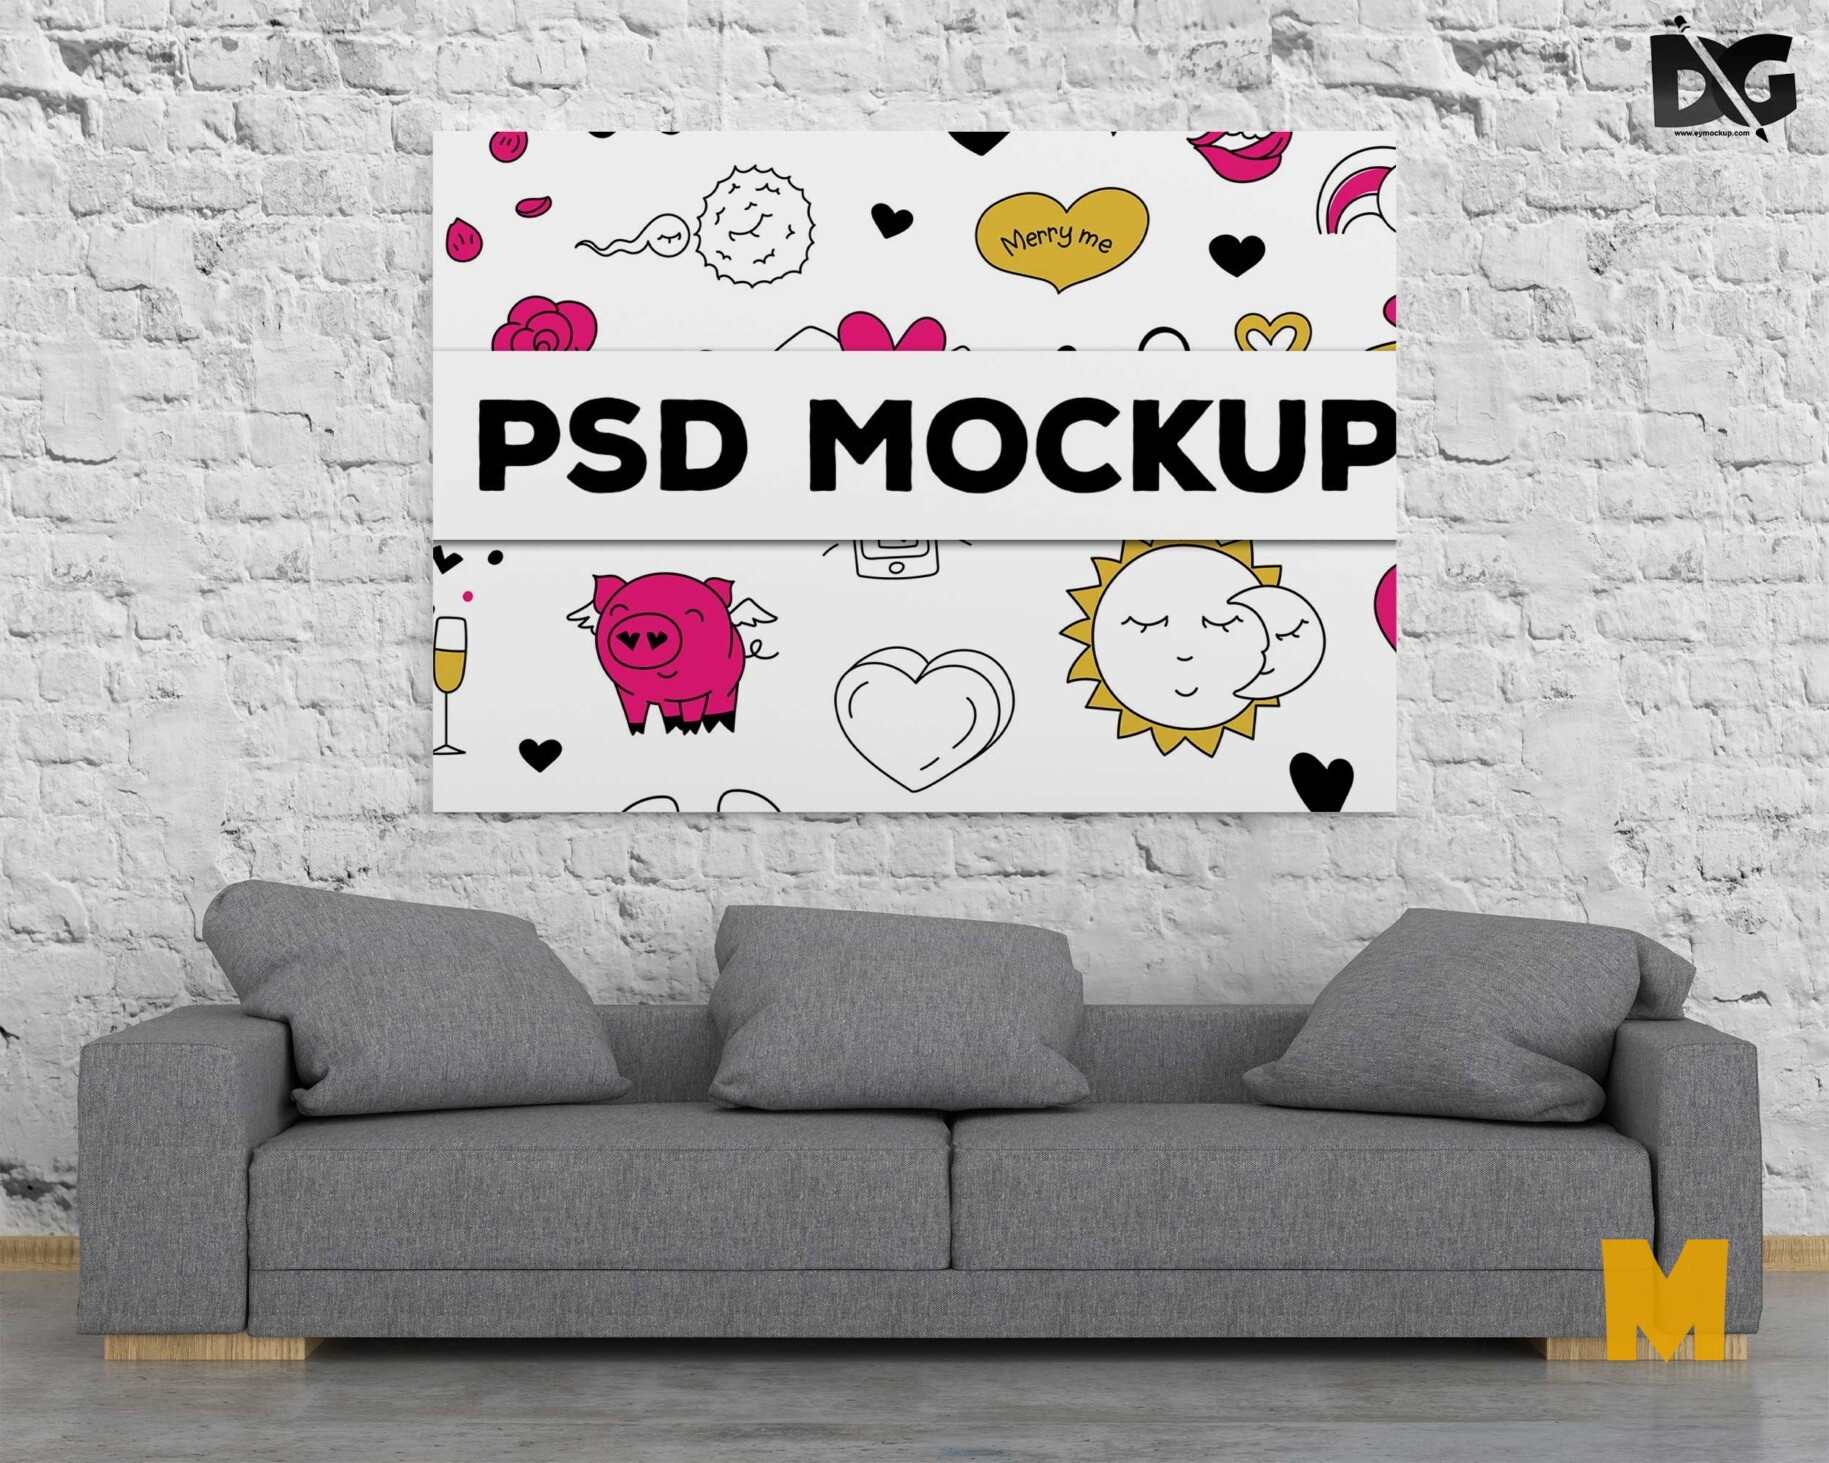 Poster Painting Mockup